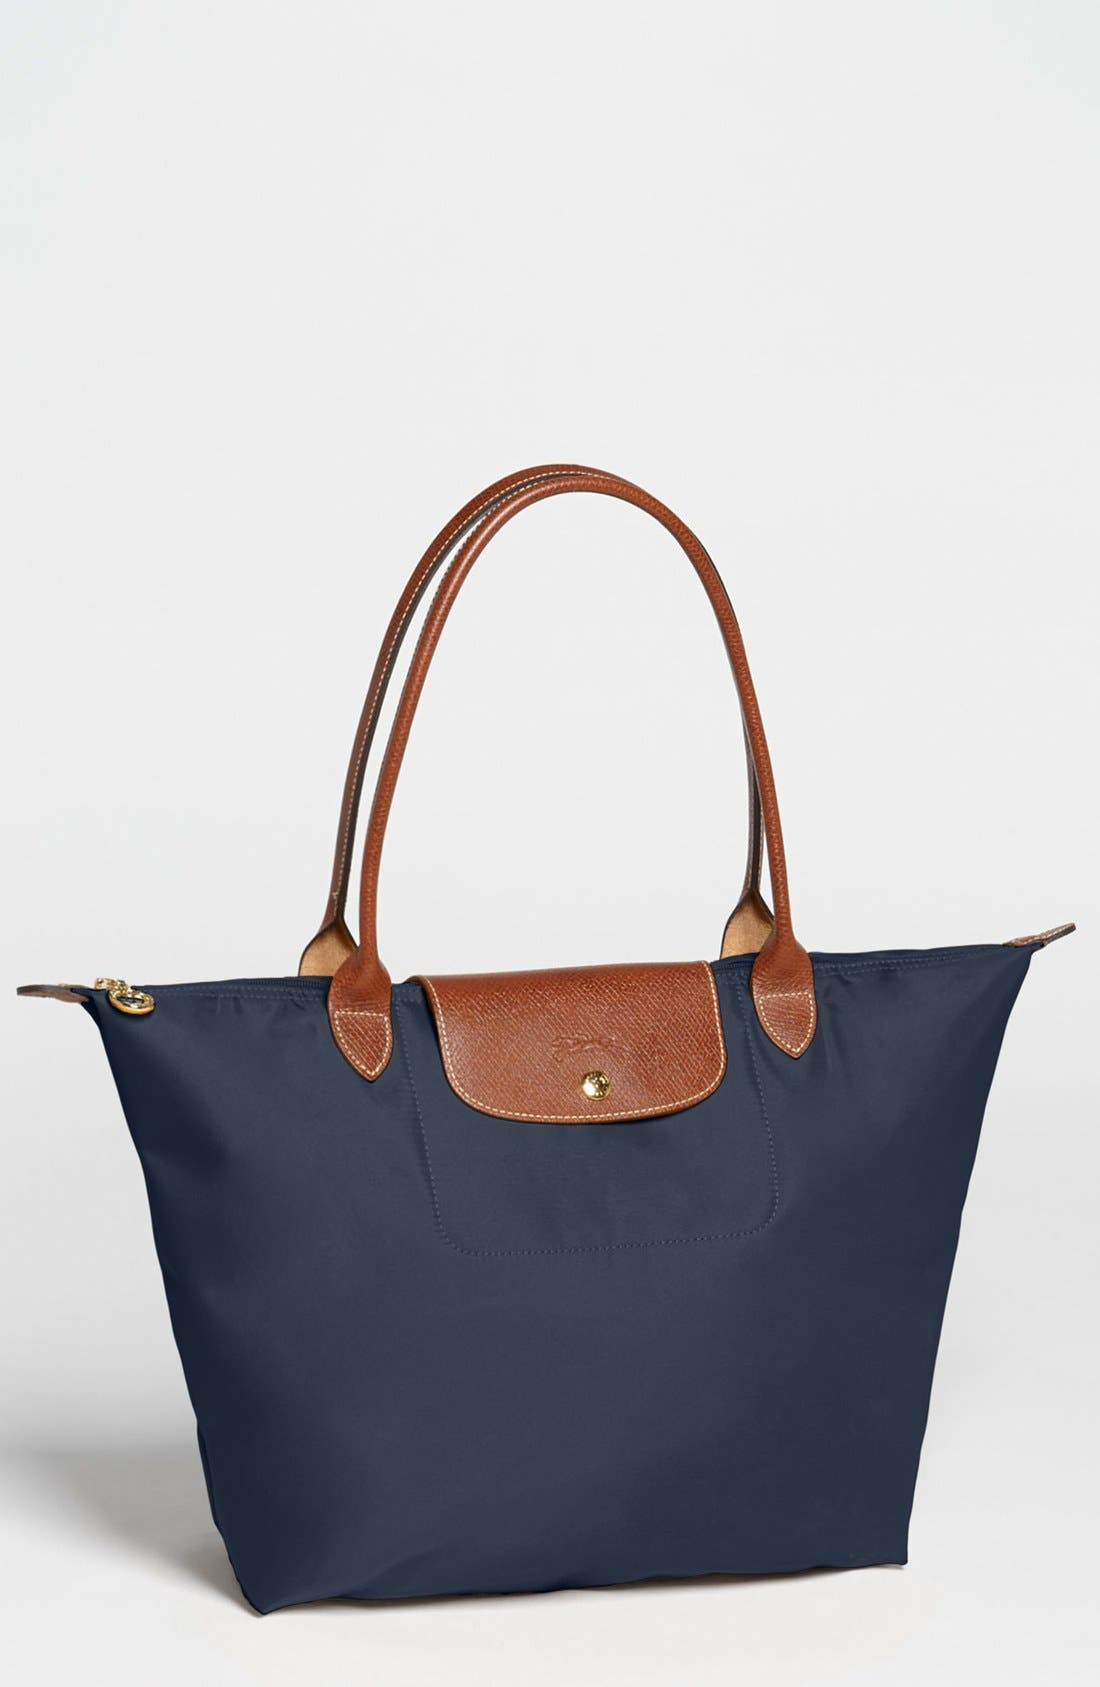 Blue Tote Bags for Women: Canvas, Leather, Nylon & More | Nordstrom